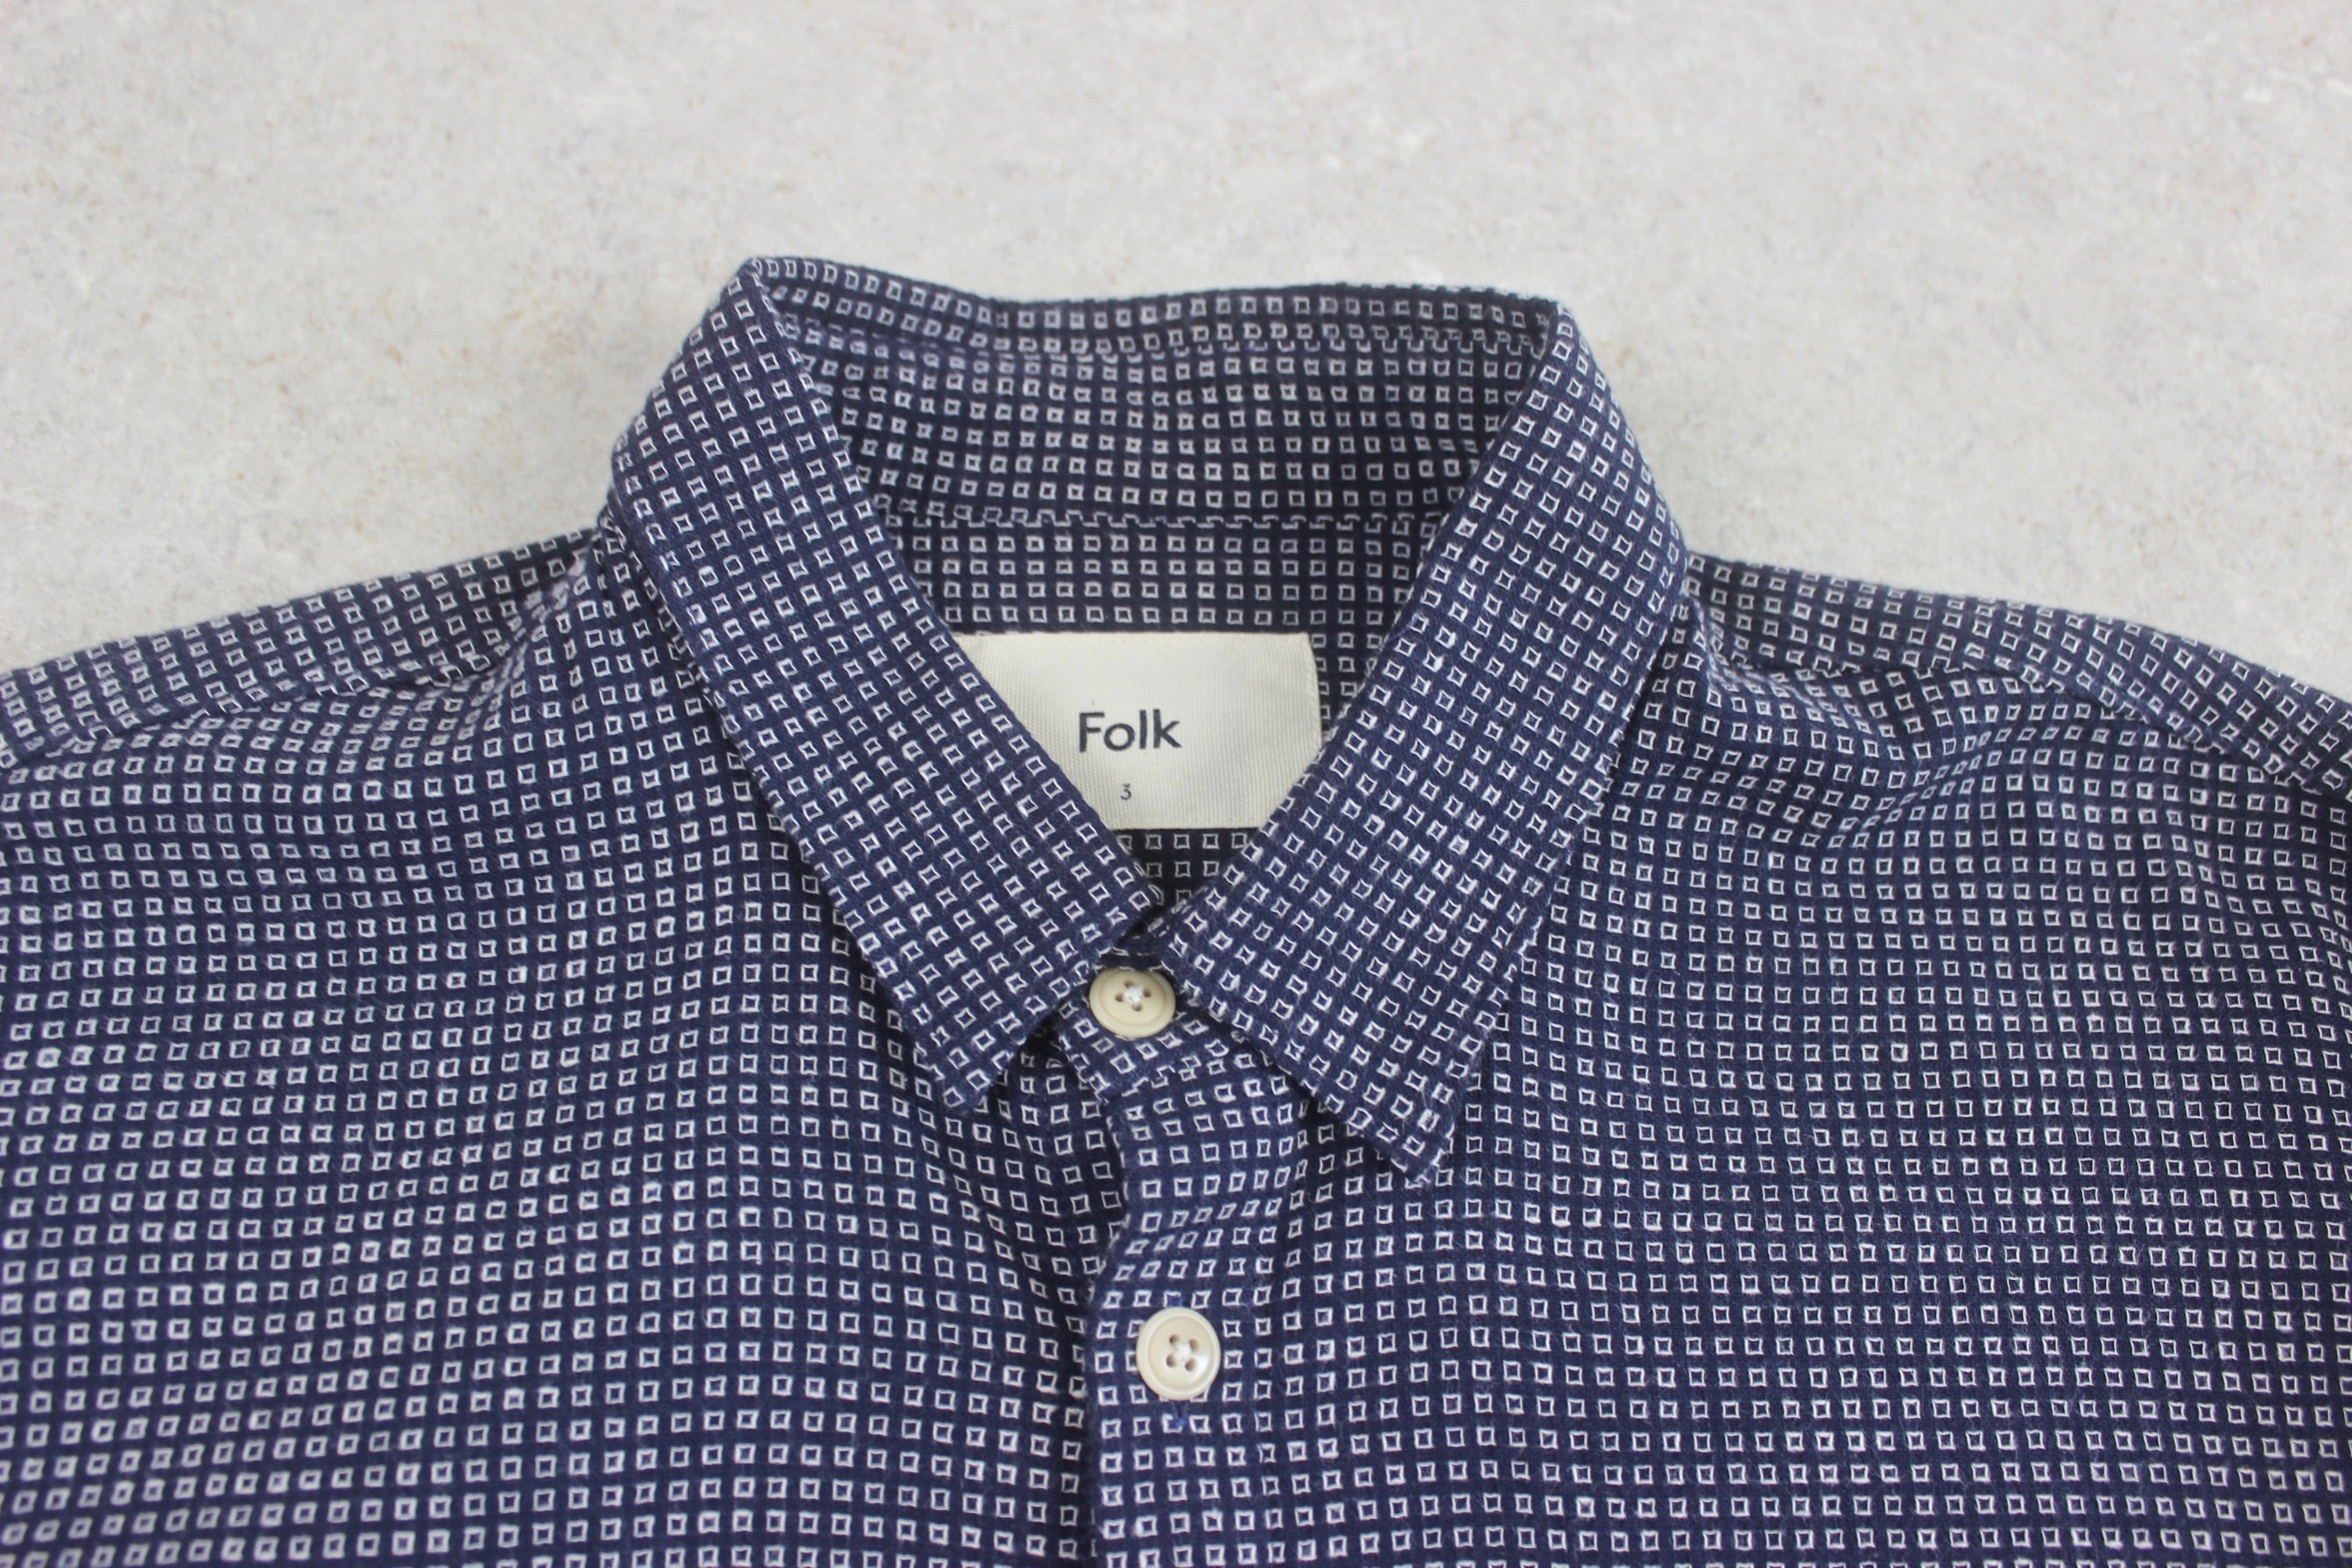 Folk - Shirt - Navy Blue/White Pattern - 3/Medium